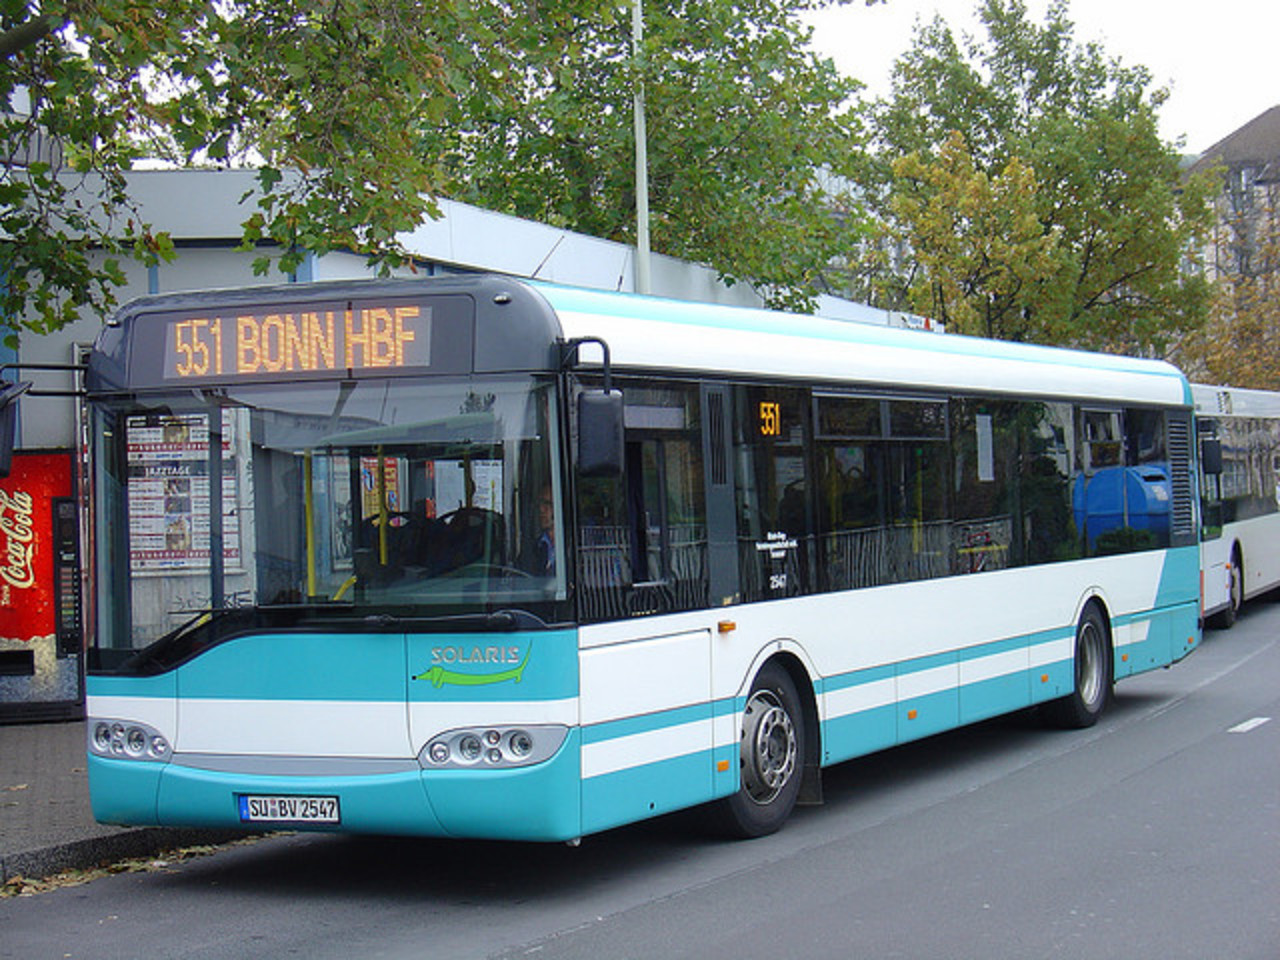 Solaris Urbino 12 Bus | Flickr - Photo Sharing!